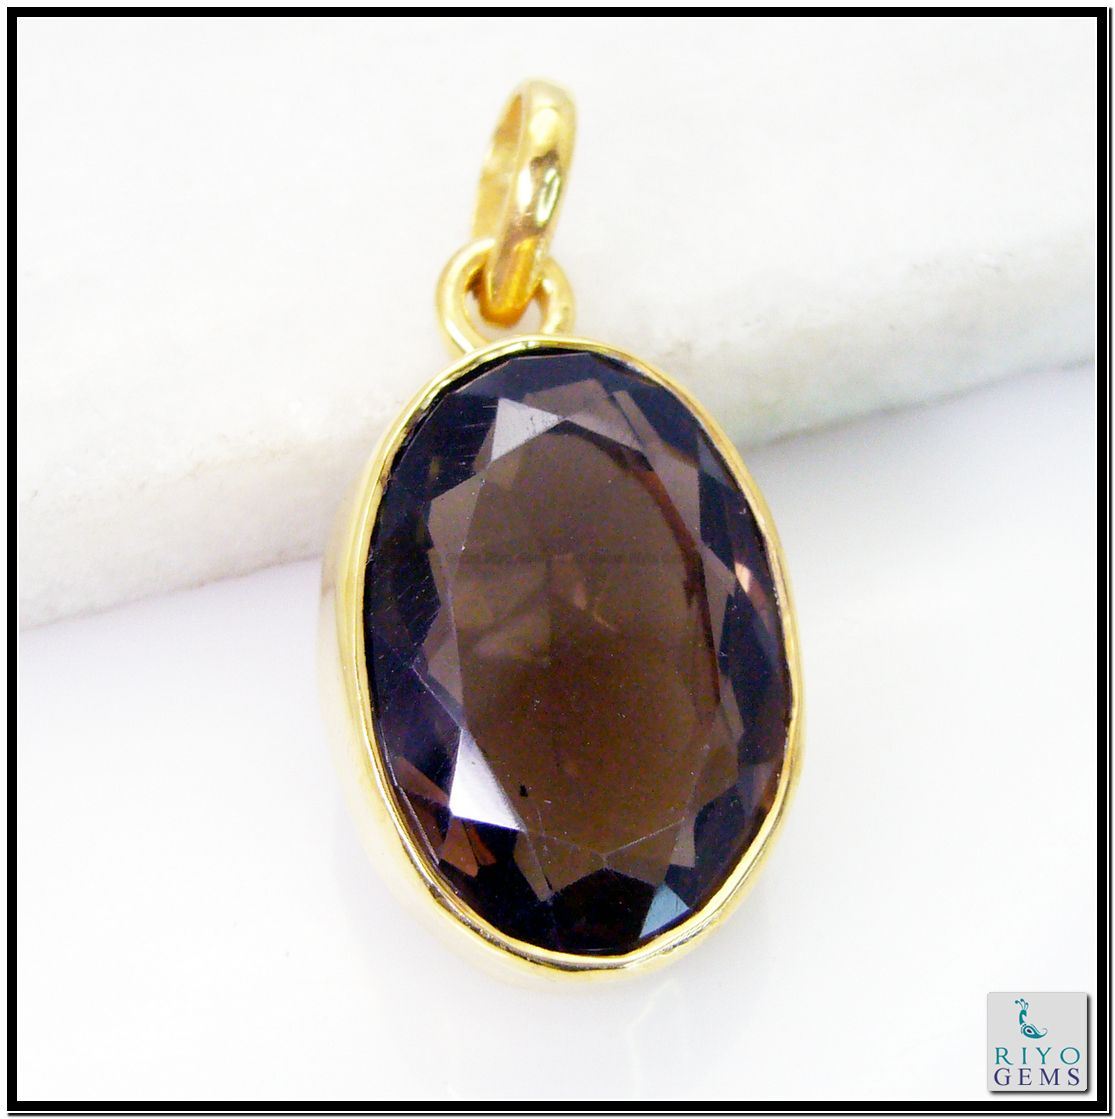 Smoky Quartz Gems 18k Yellow Gold Plated Peacock Pendant L 1.25in Gppsqu-7625 http://www.riyogems.com